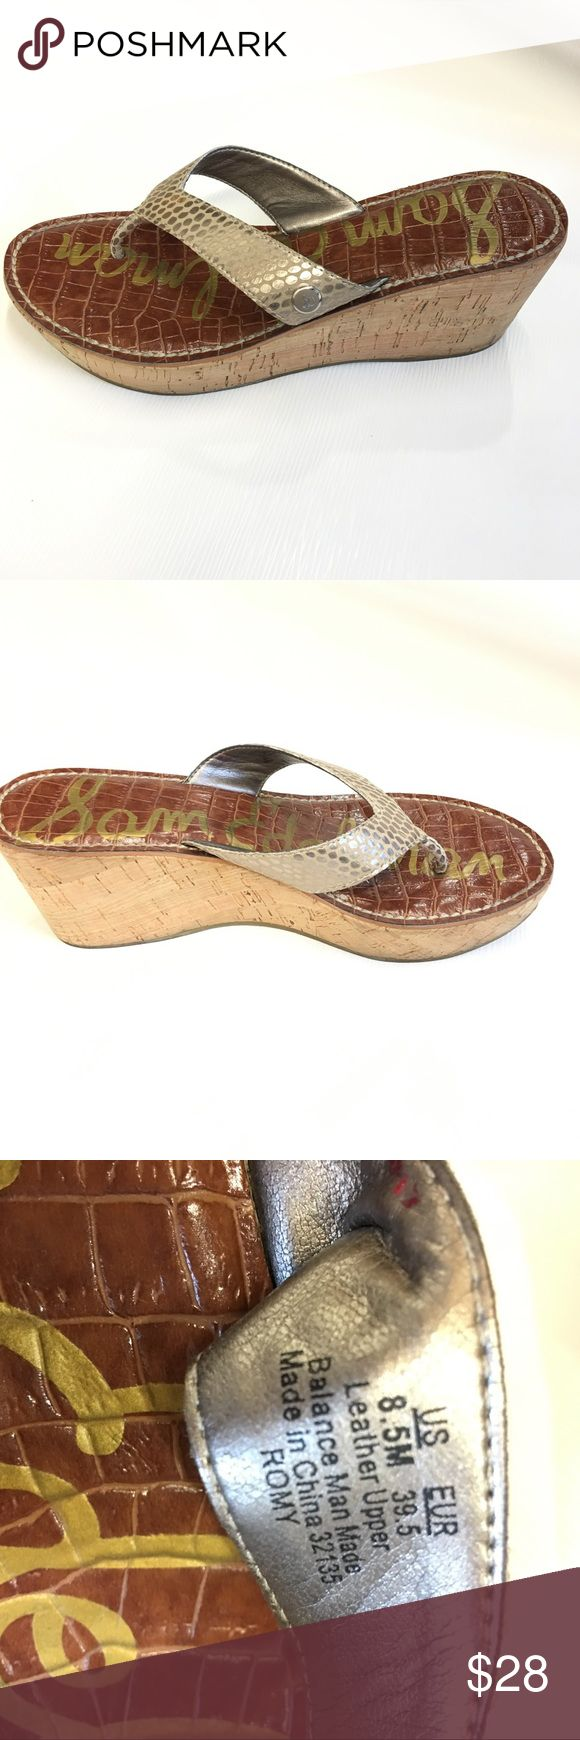 Sam Edelman Silver Wedges Sandals 8.5 M Shoes are in excellent used condition. Sam Edelman Shoes Wedges